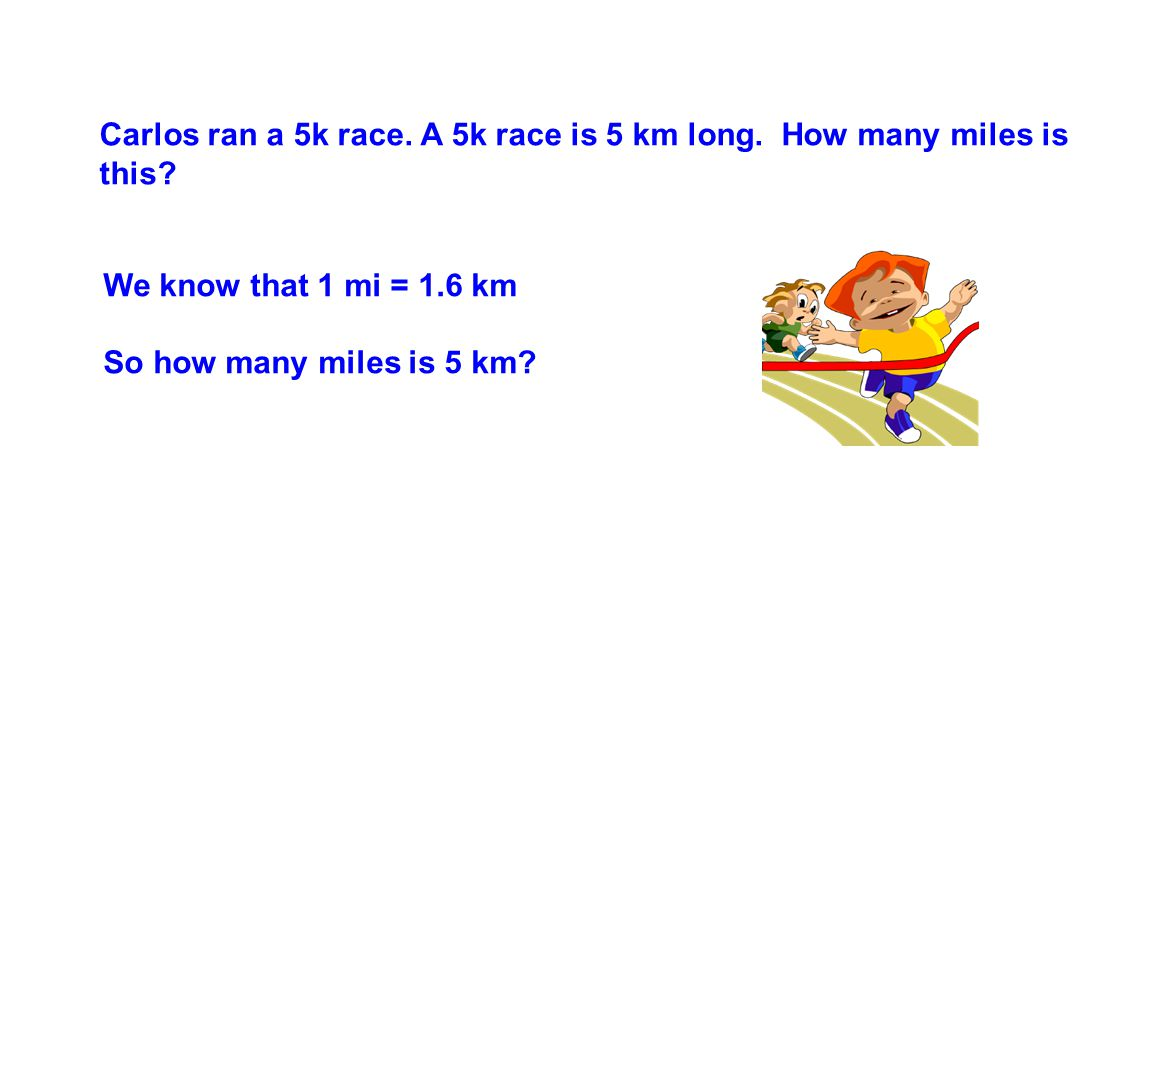 Carlos ran a 5k race.A 5k race is 5 km long. How many miles is this.